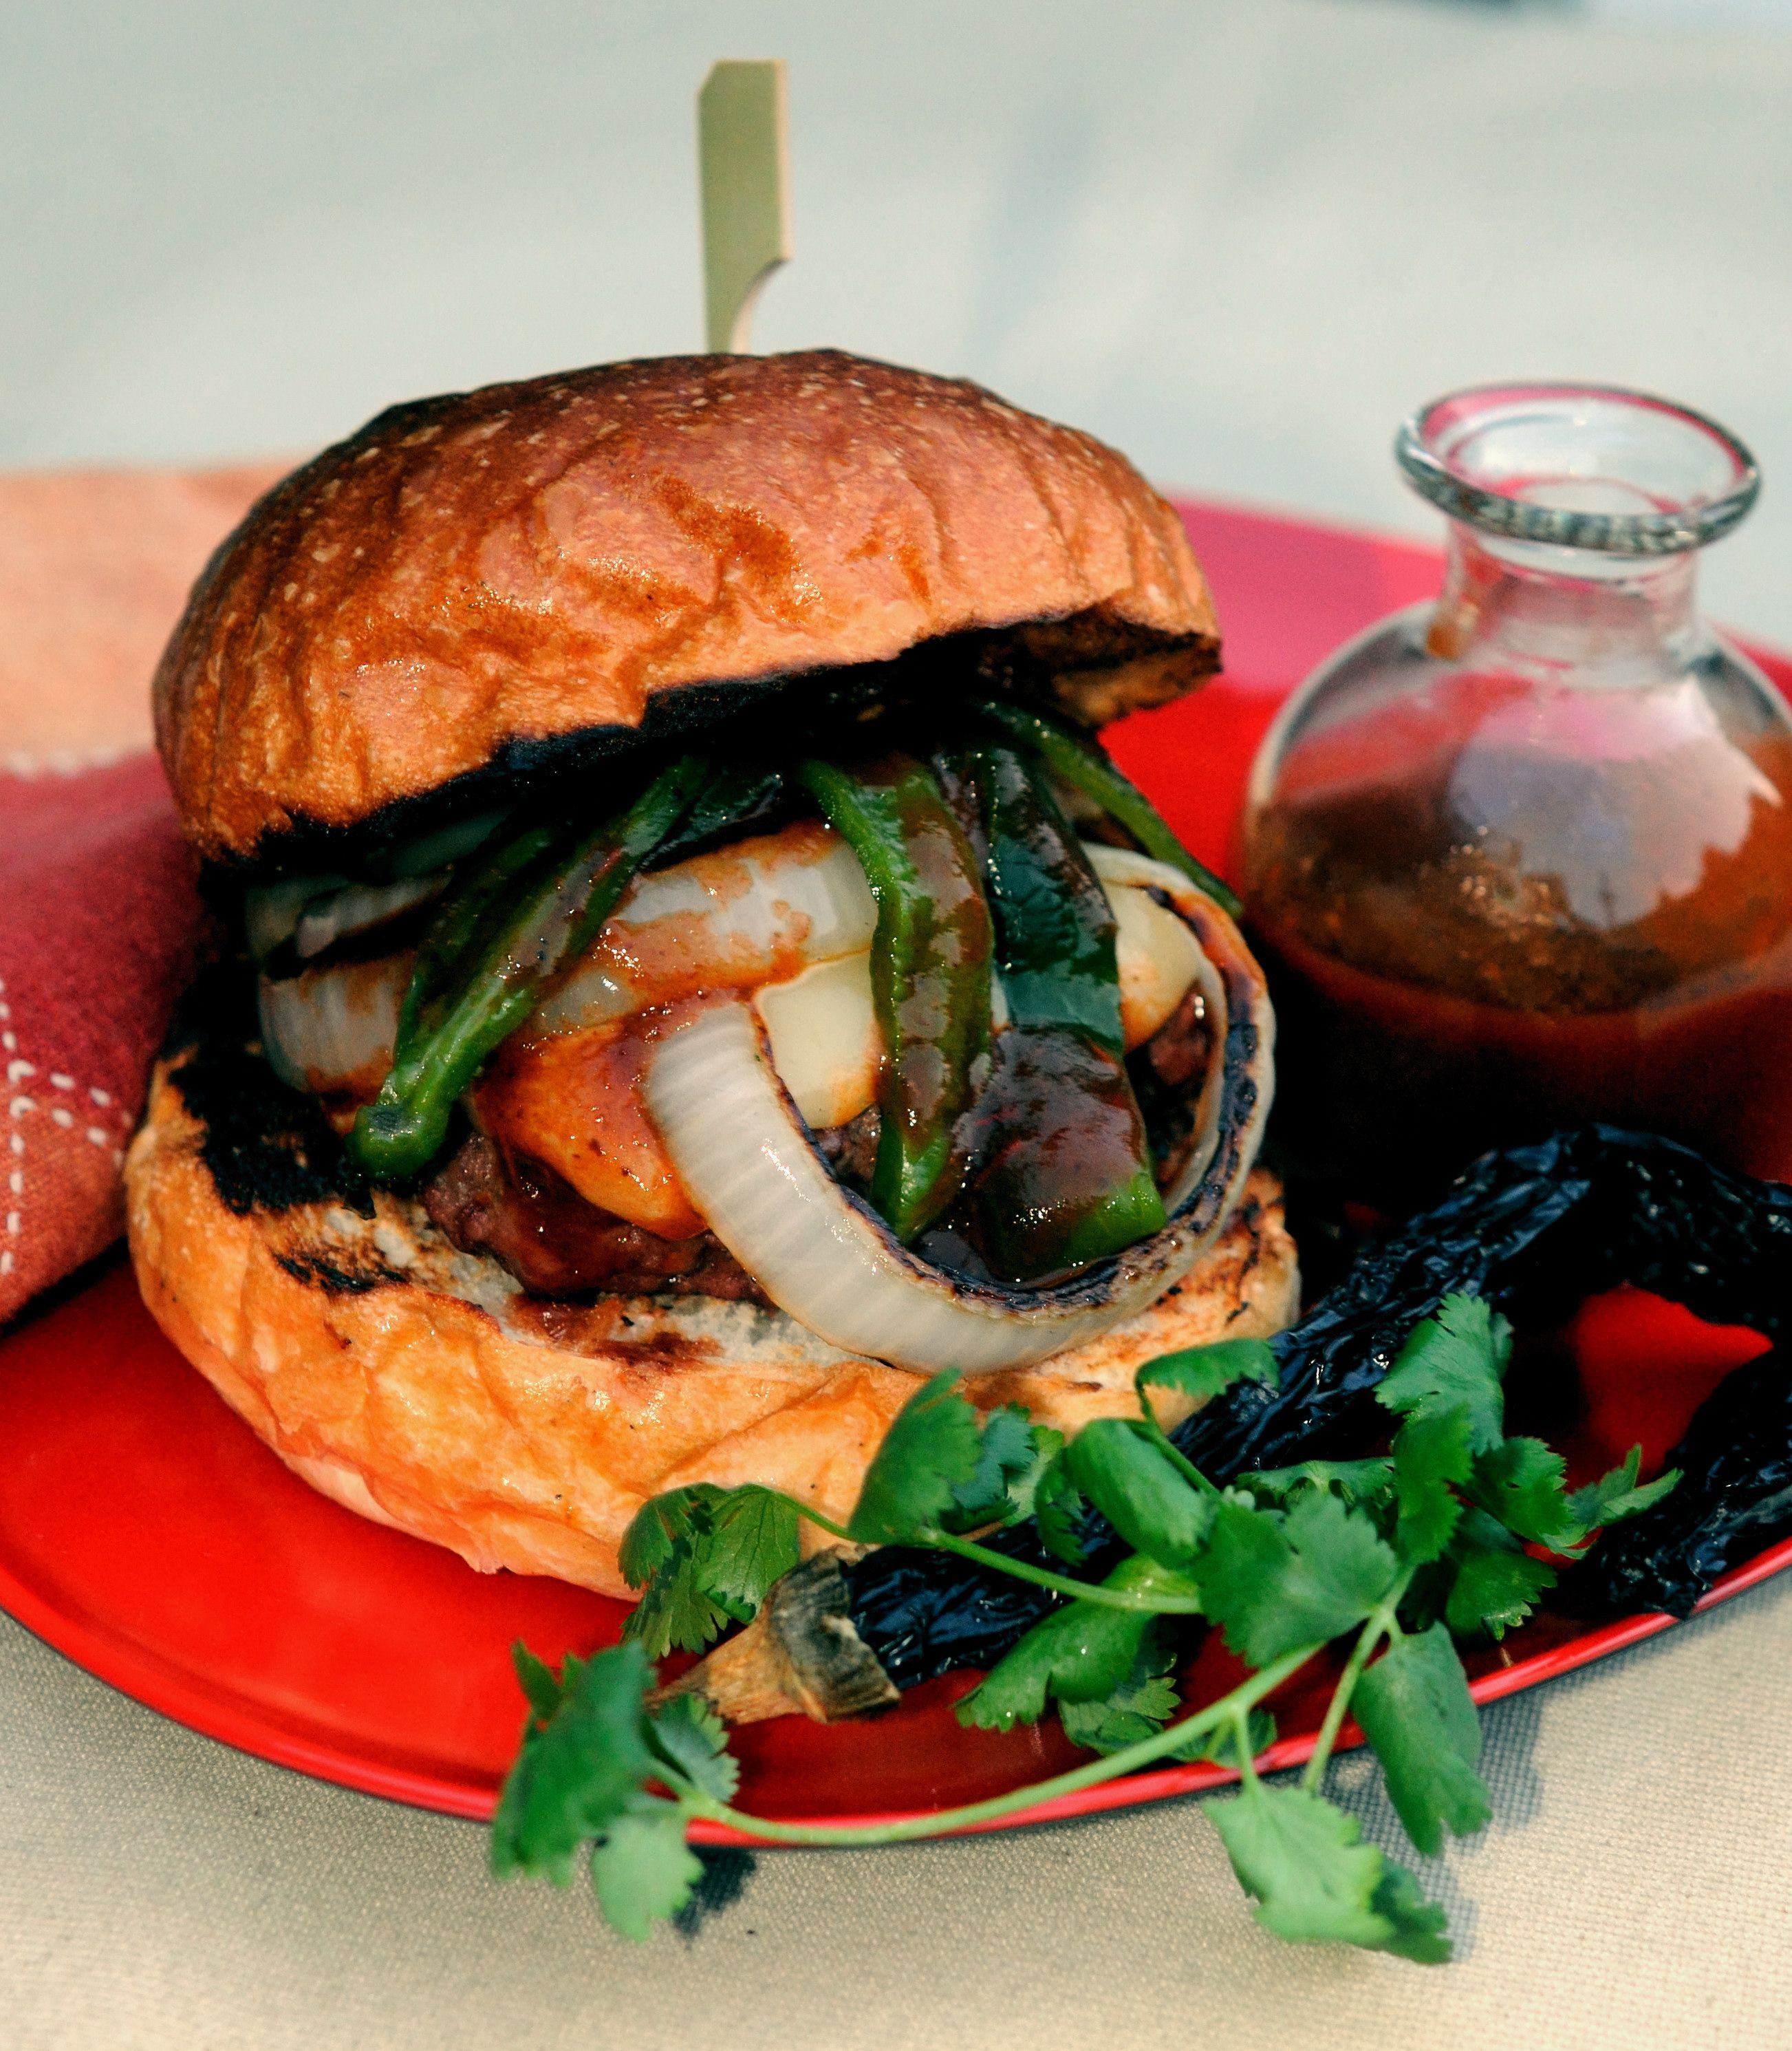 Get our the barbecue!  A scrumptious combination of roasted poblano chilies, grilled onions and a homemade chipotle salsa topping a turkey burger!  Awesome!  http://oracibo.com/recipe/burgers-with-grilled-peppers-grilled-onions-and-chipotle-salsa/